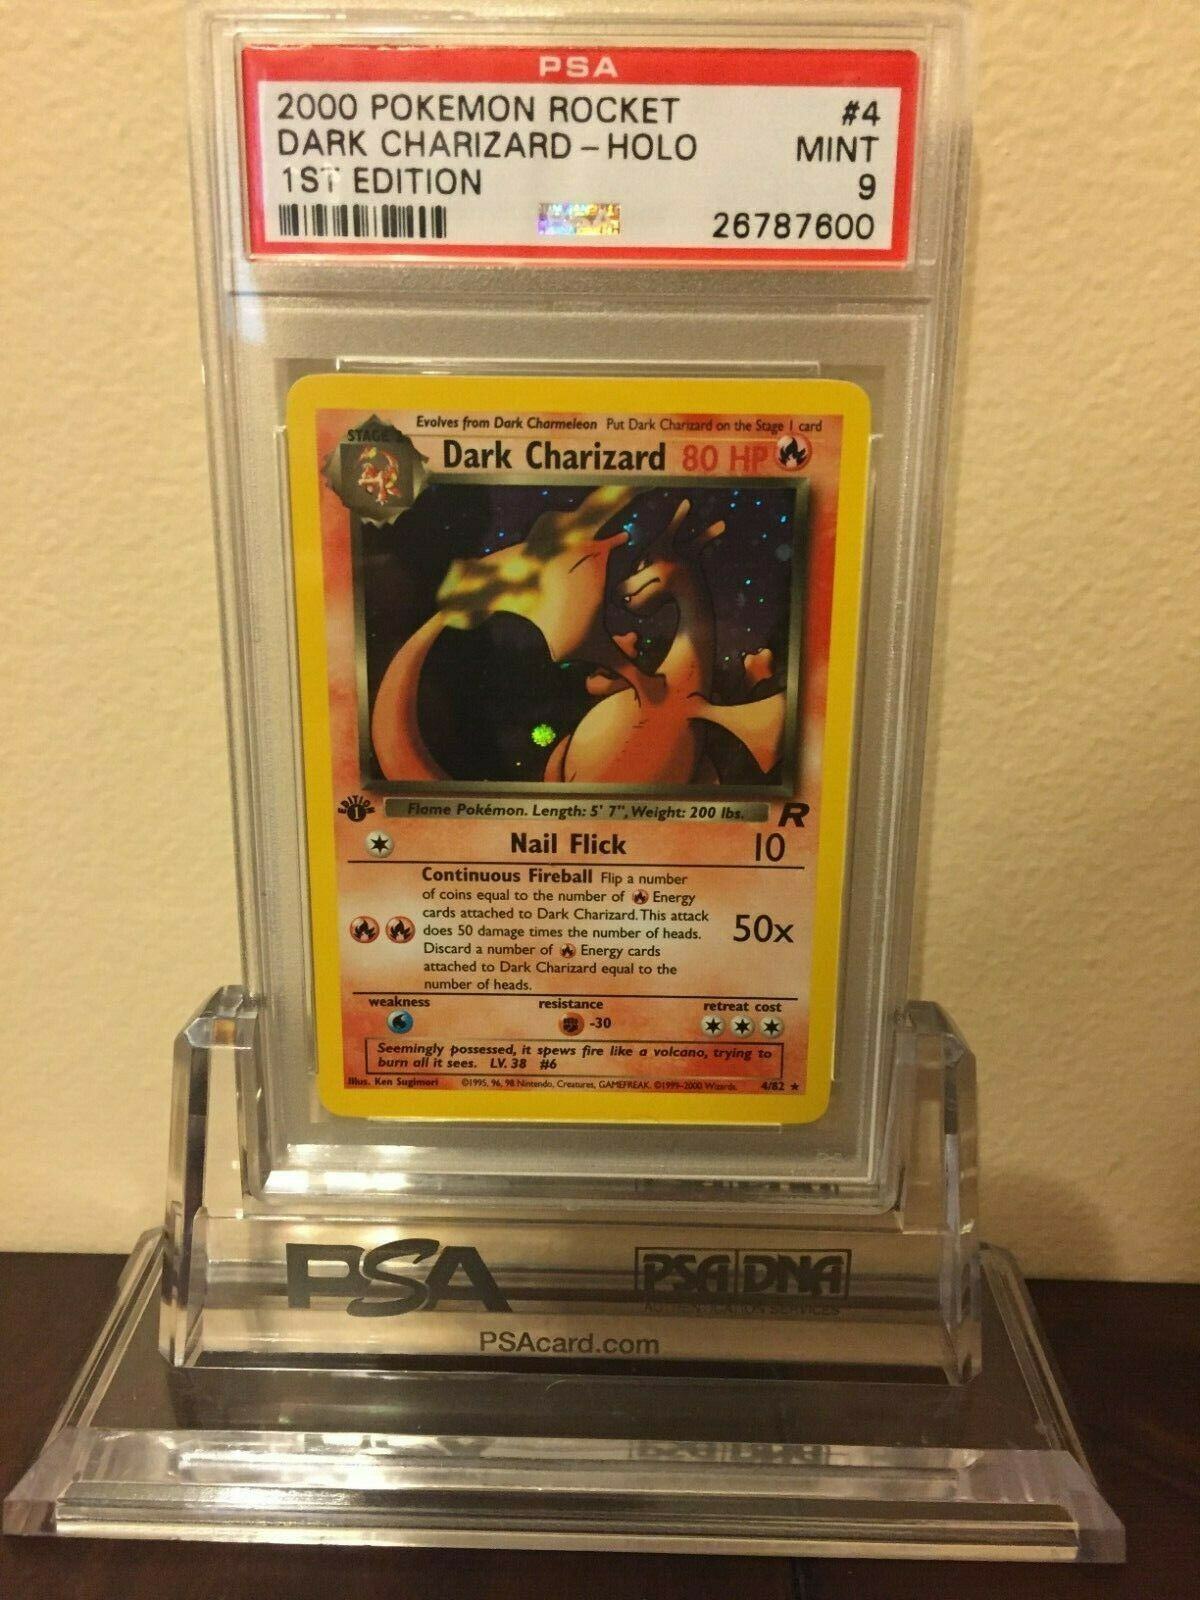 Pokemon Dark Charizard Team Rocket 1st Edition Holo Card PSA Mint 9 4